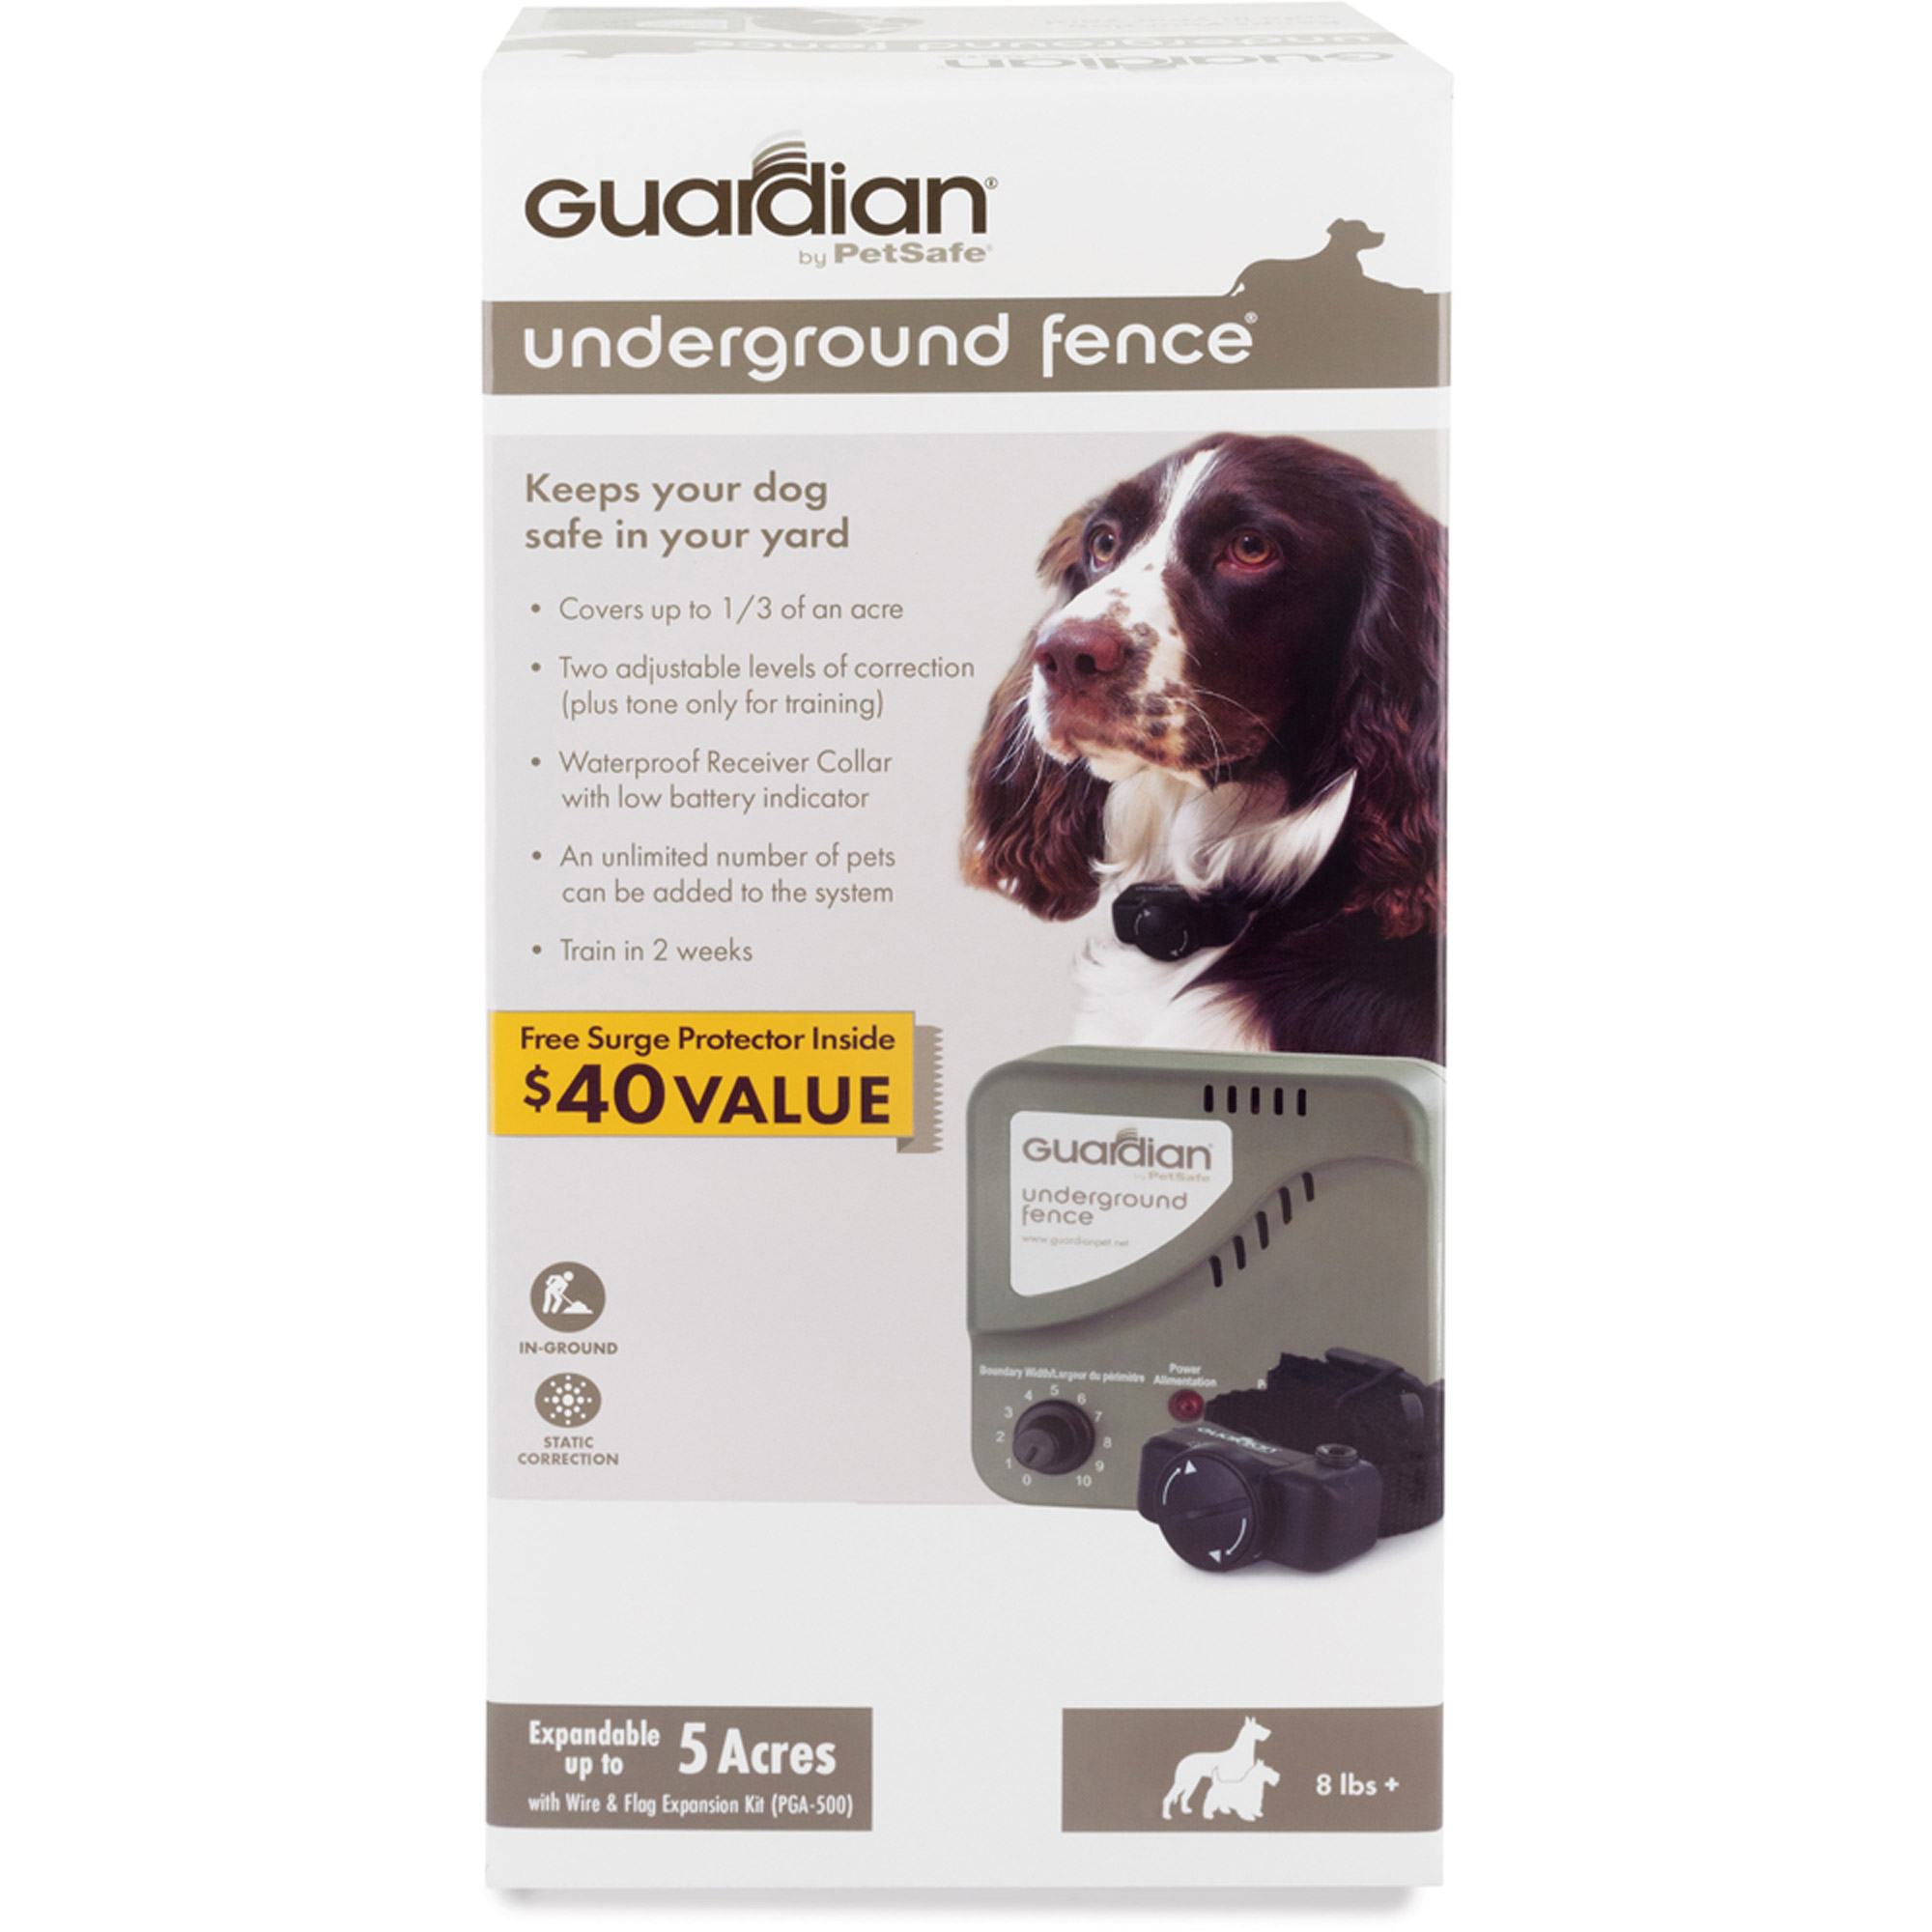 6a0c4b34 c8df 407b b26e d44838cddacd_1.a60adb611b9a8fcca95bf50adf50ab63 guardian by petsafe in ground fence system walmart com petsafe wiring diagram at gsmportal.co